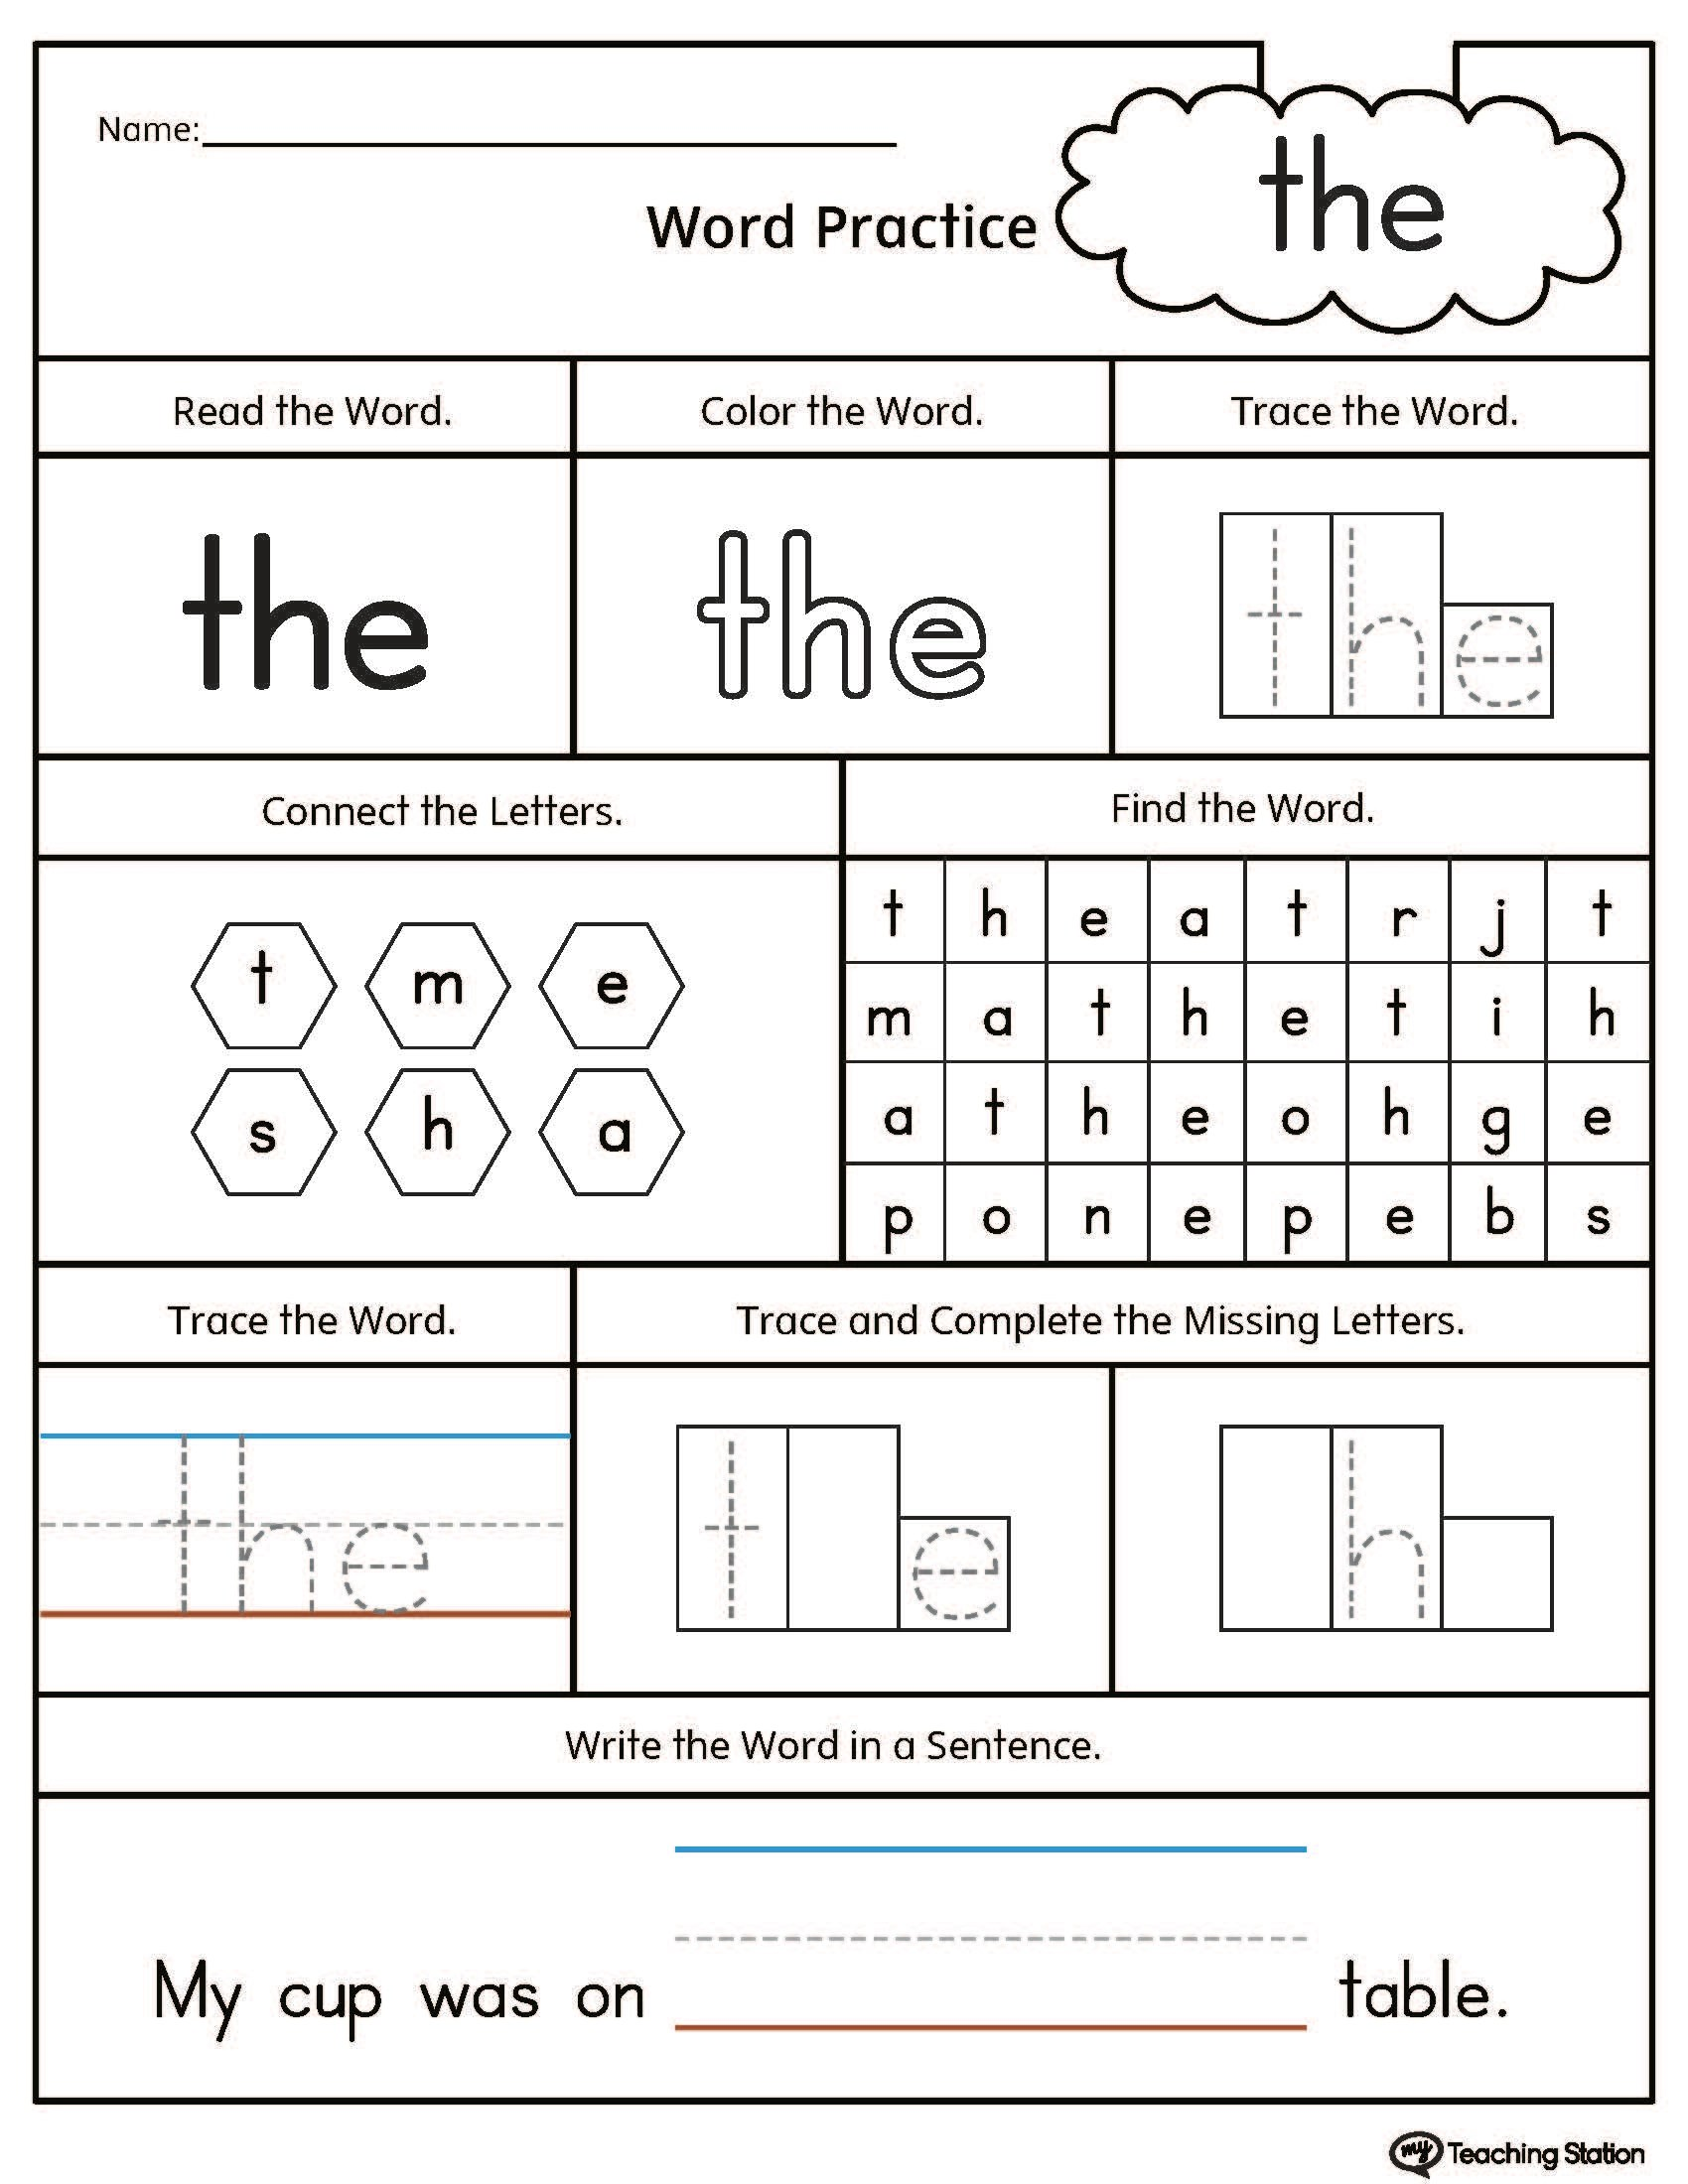 hight resolution of Sight Word the Printable Worksheet   MyTeachingStation.com